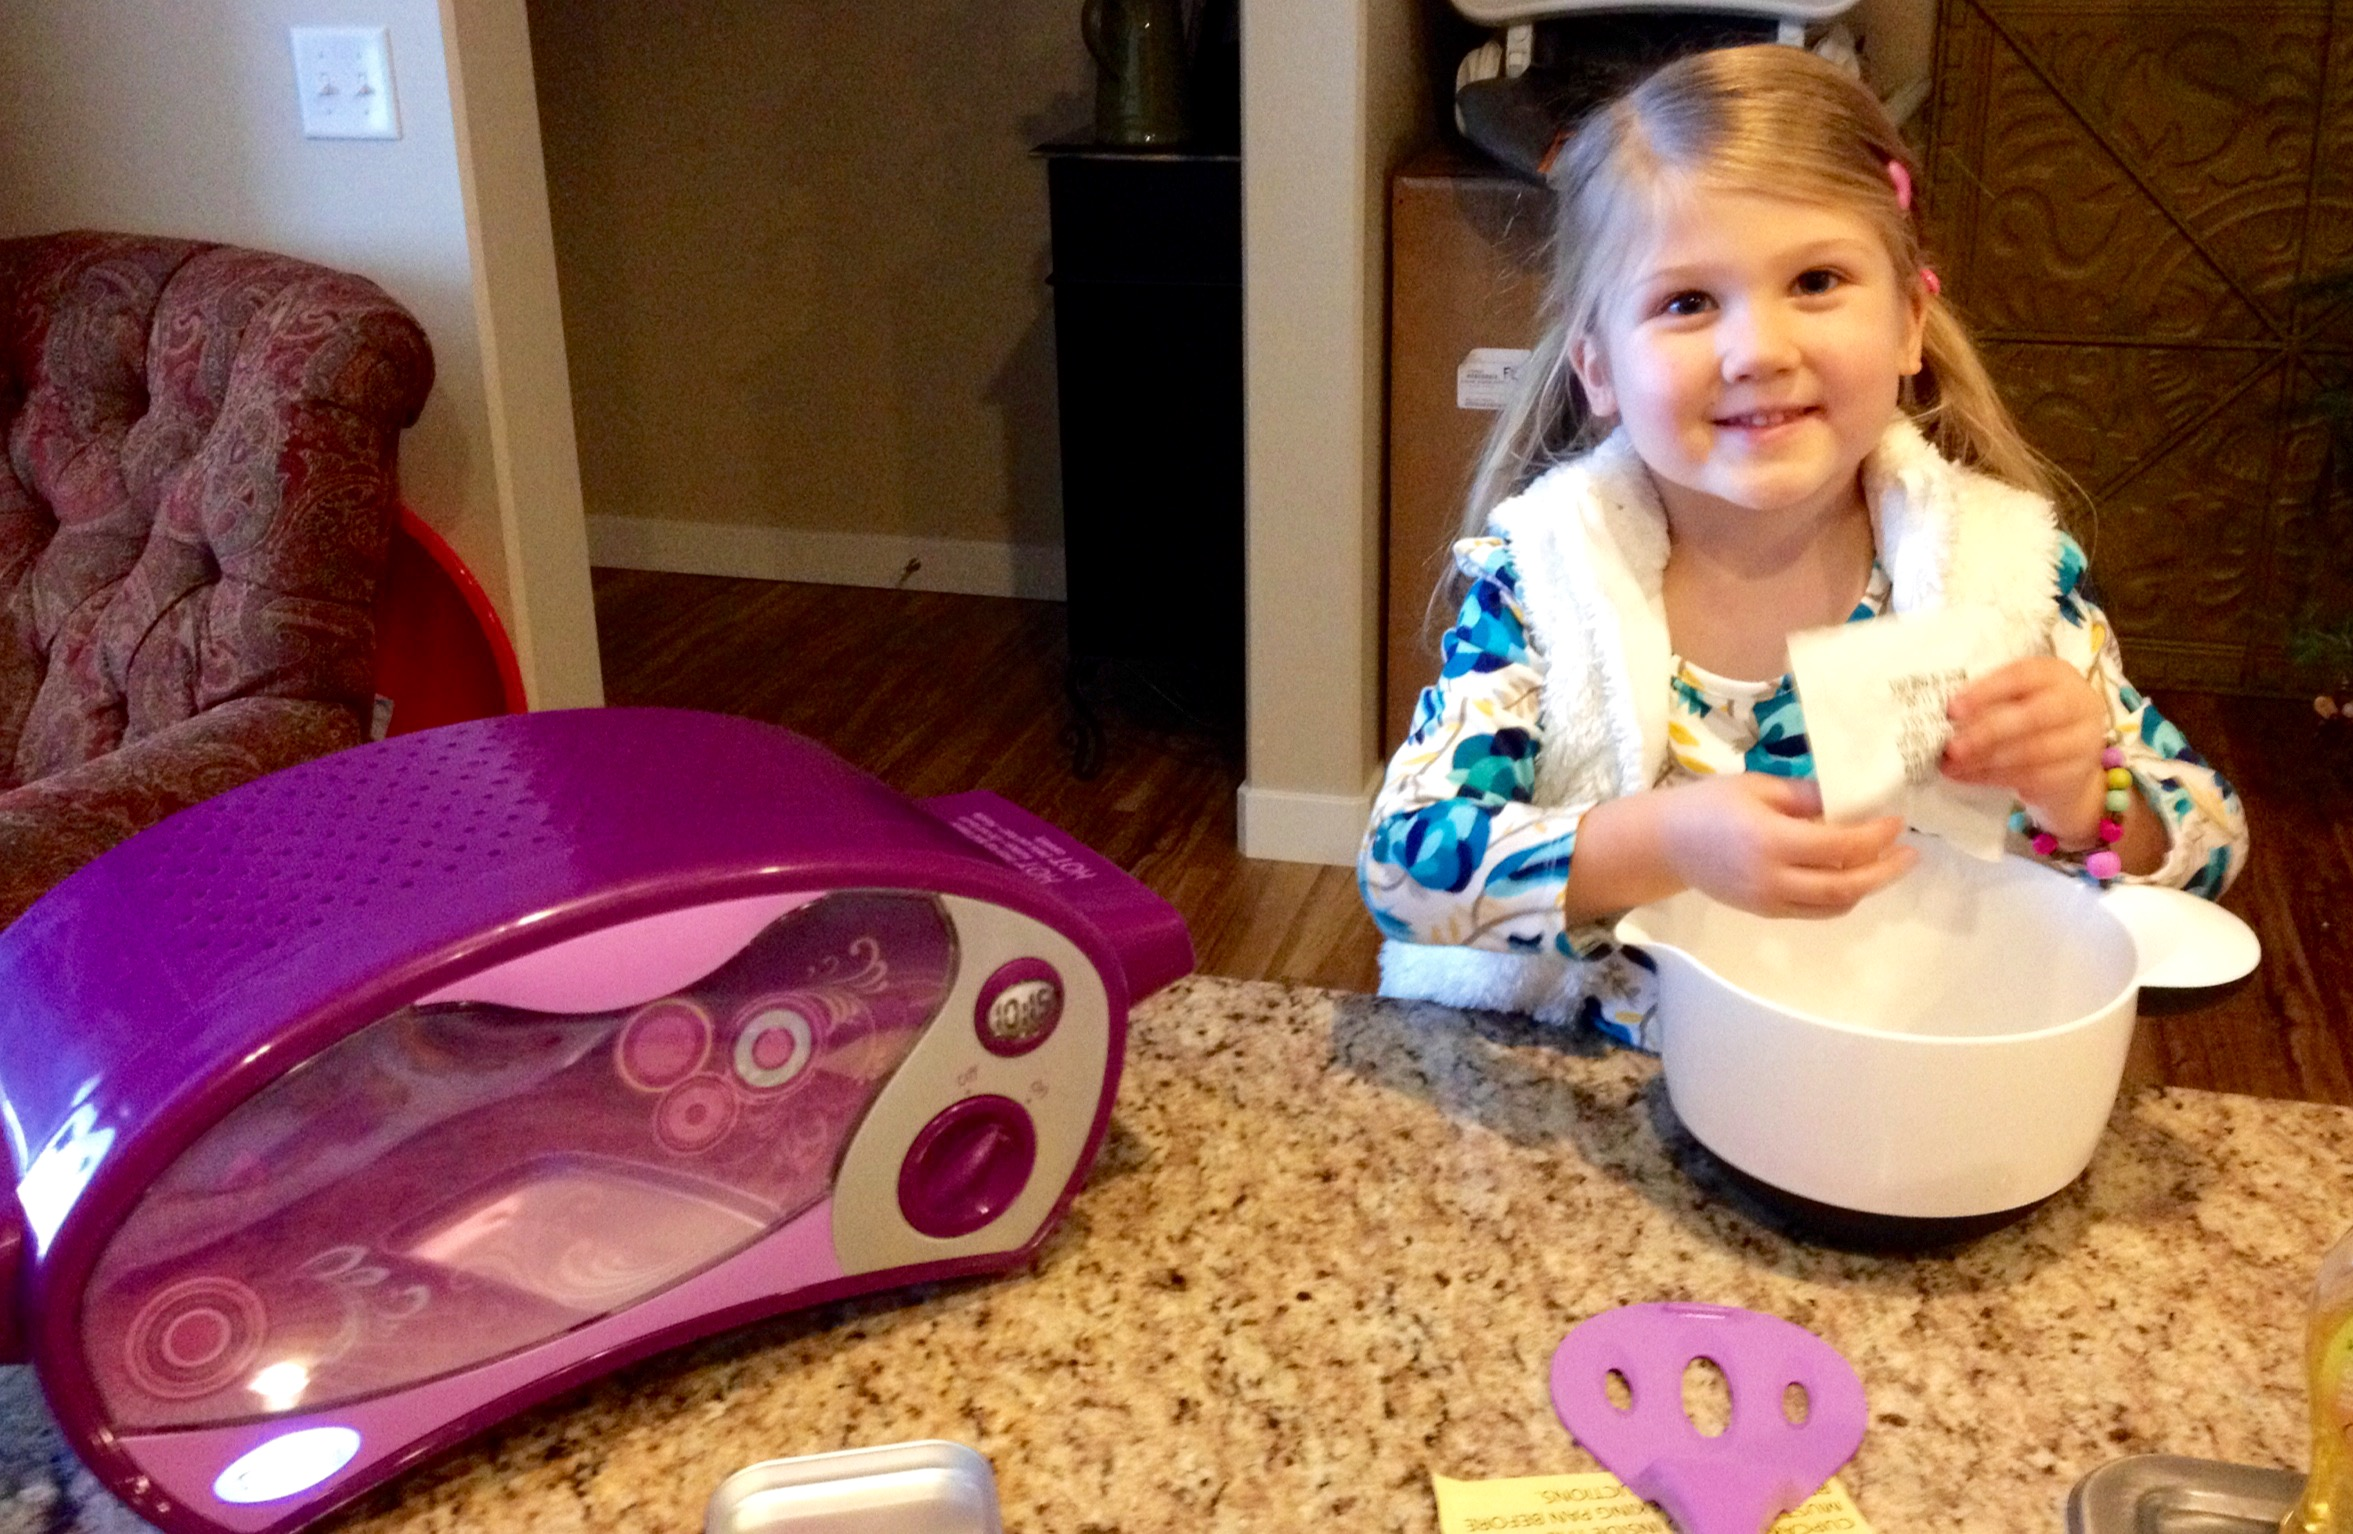 Grandma's Favorite Things...Easy Bake Oven